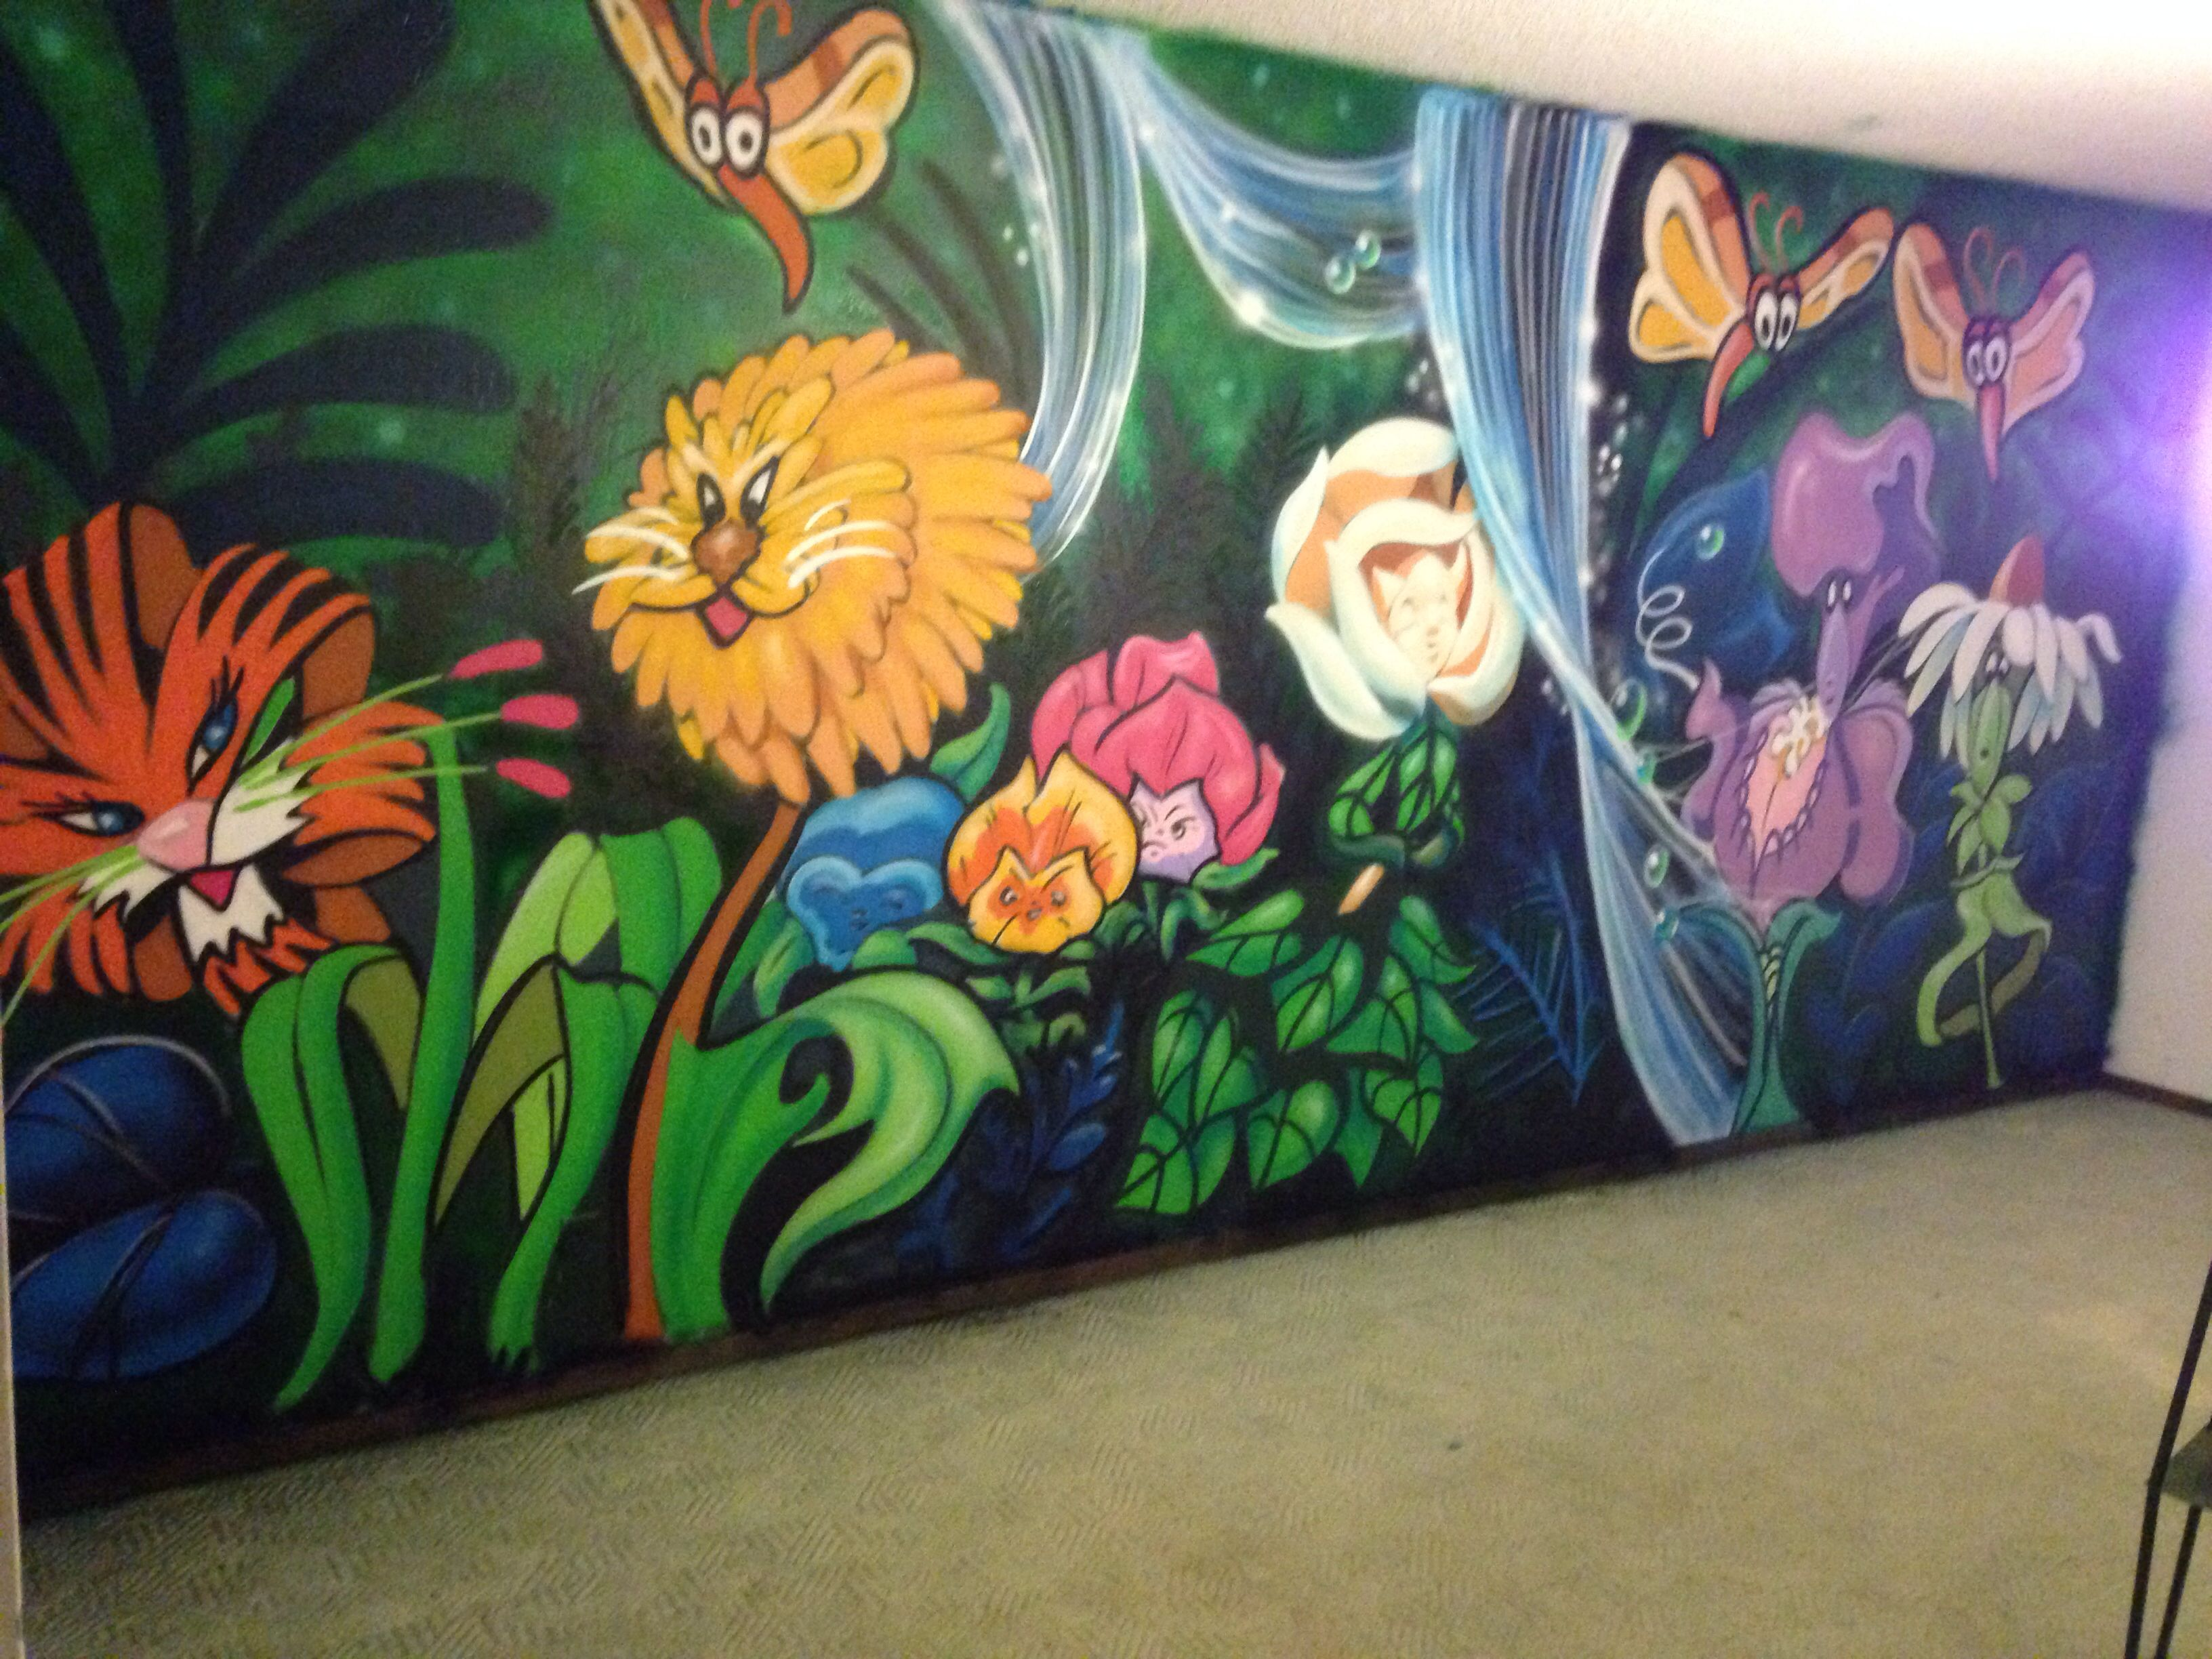 alice in wonderland talking flowers nursery wall mural done with alice in wonderland talking flowers nursery wall mural done with spray paint by nicholas